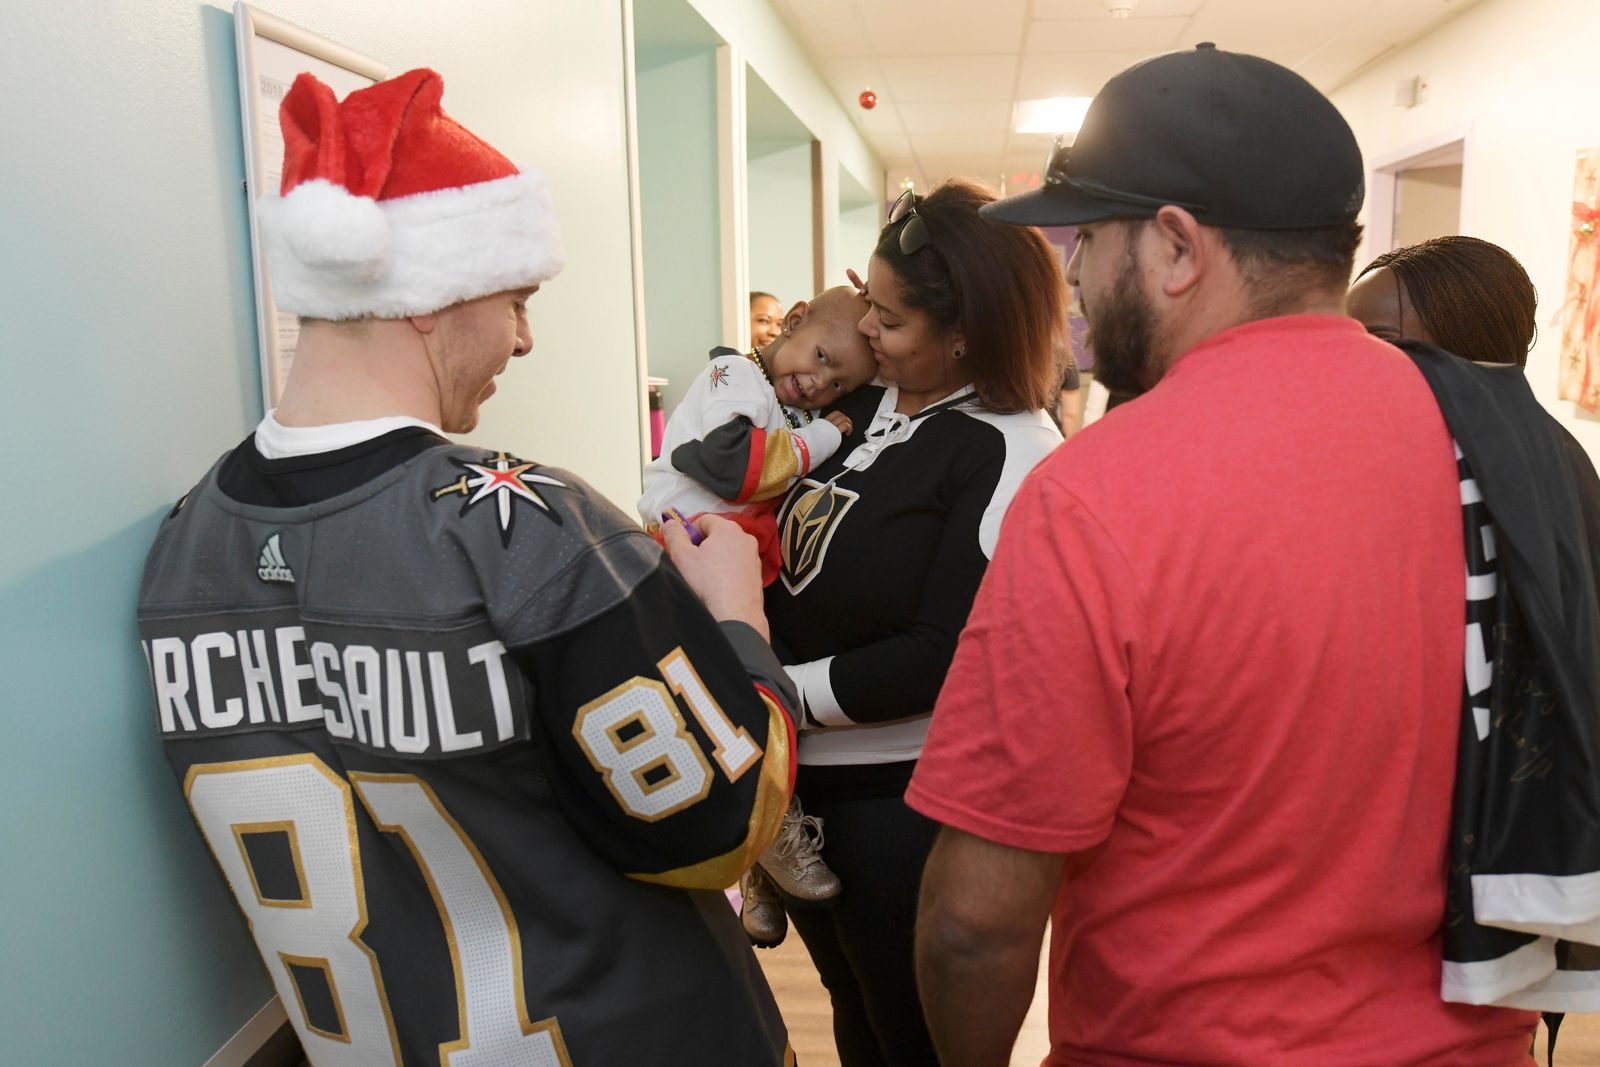 Izzy Woodward, held by her mother Tierra Woodward, acts coy while meeting her favorite player, Jonathan Marchessault, during the Vegas Golden Knights visit to Summerlin Hospital Friday, December 21, 2018. CREDIT: Sam Morris/Las Vegas News Bureau